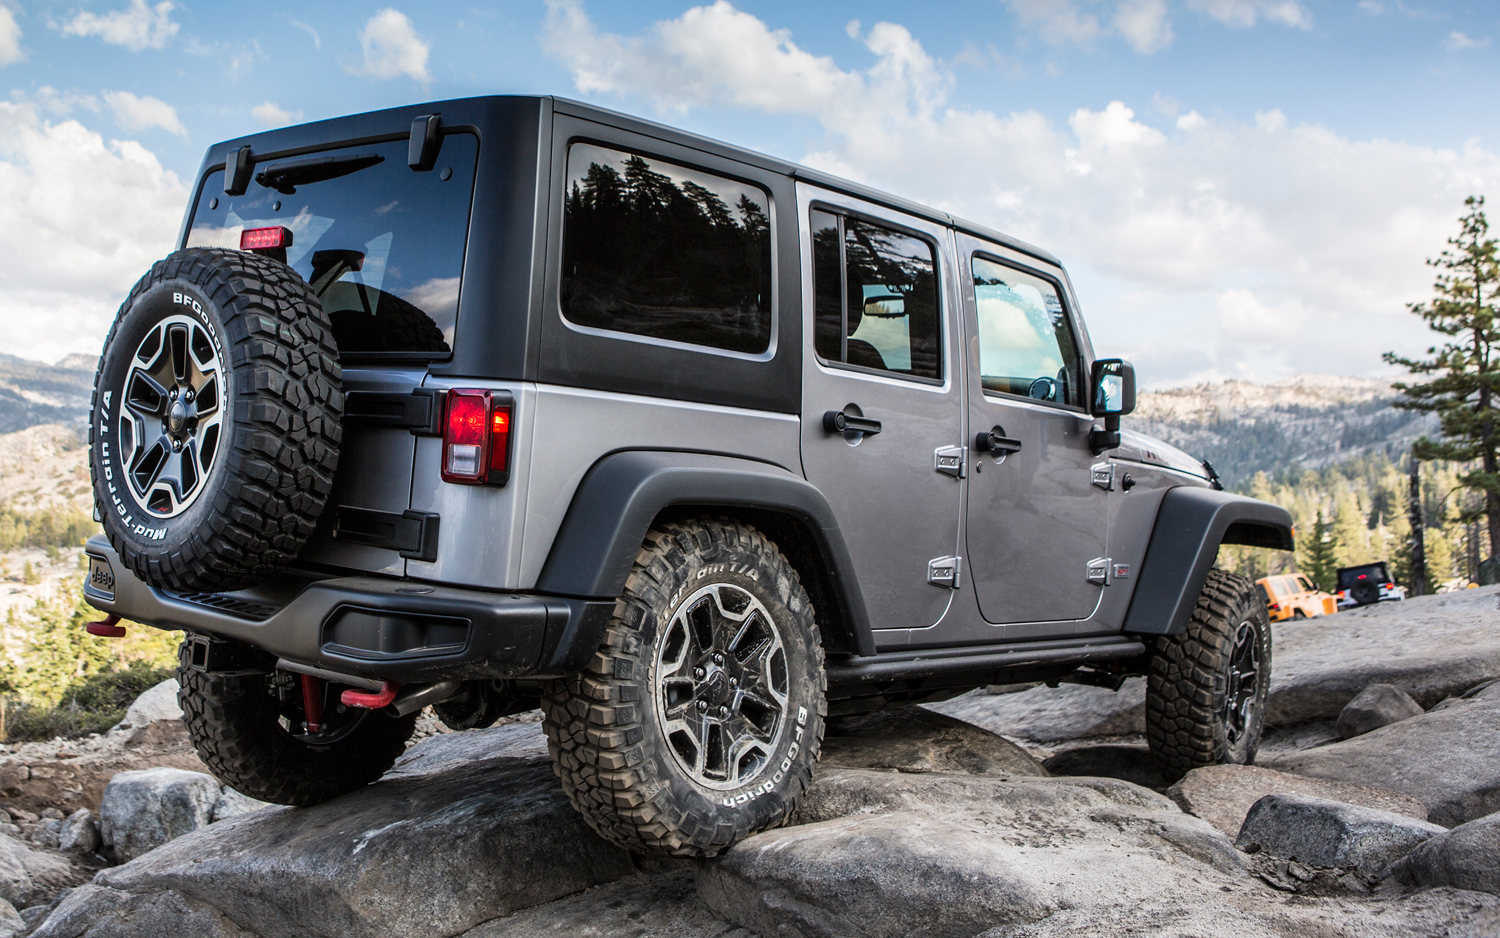 2013 Jeep Wrangler Rubicon Unlimited Rear 02